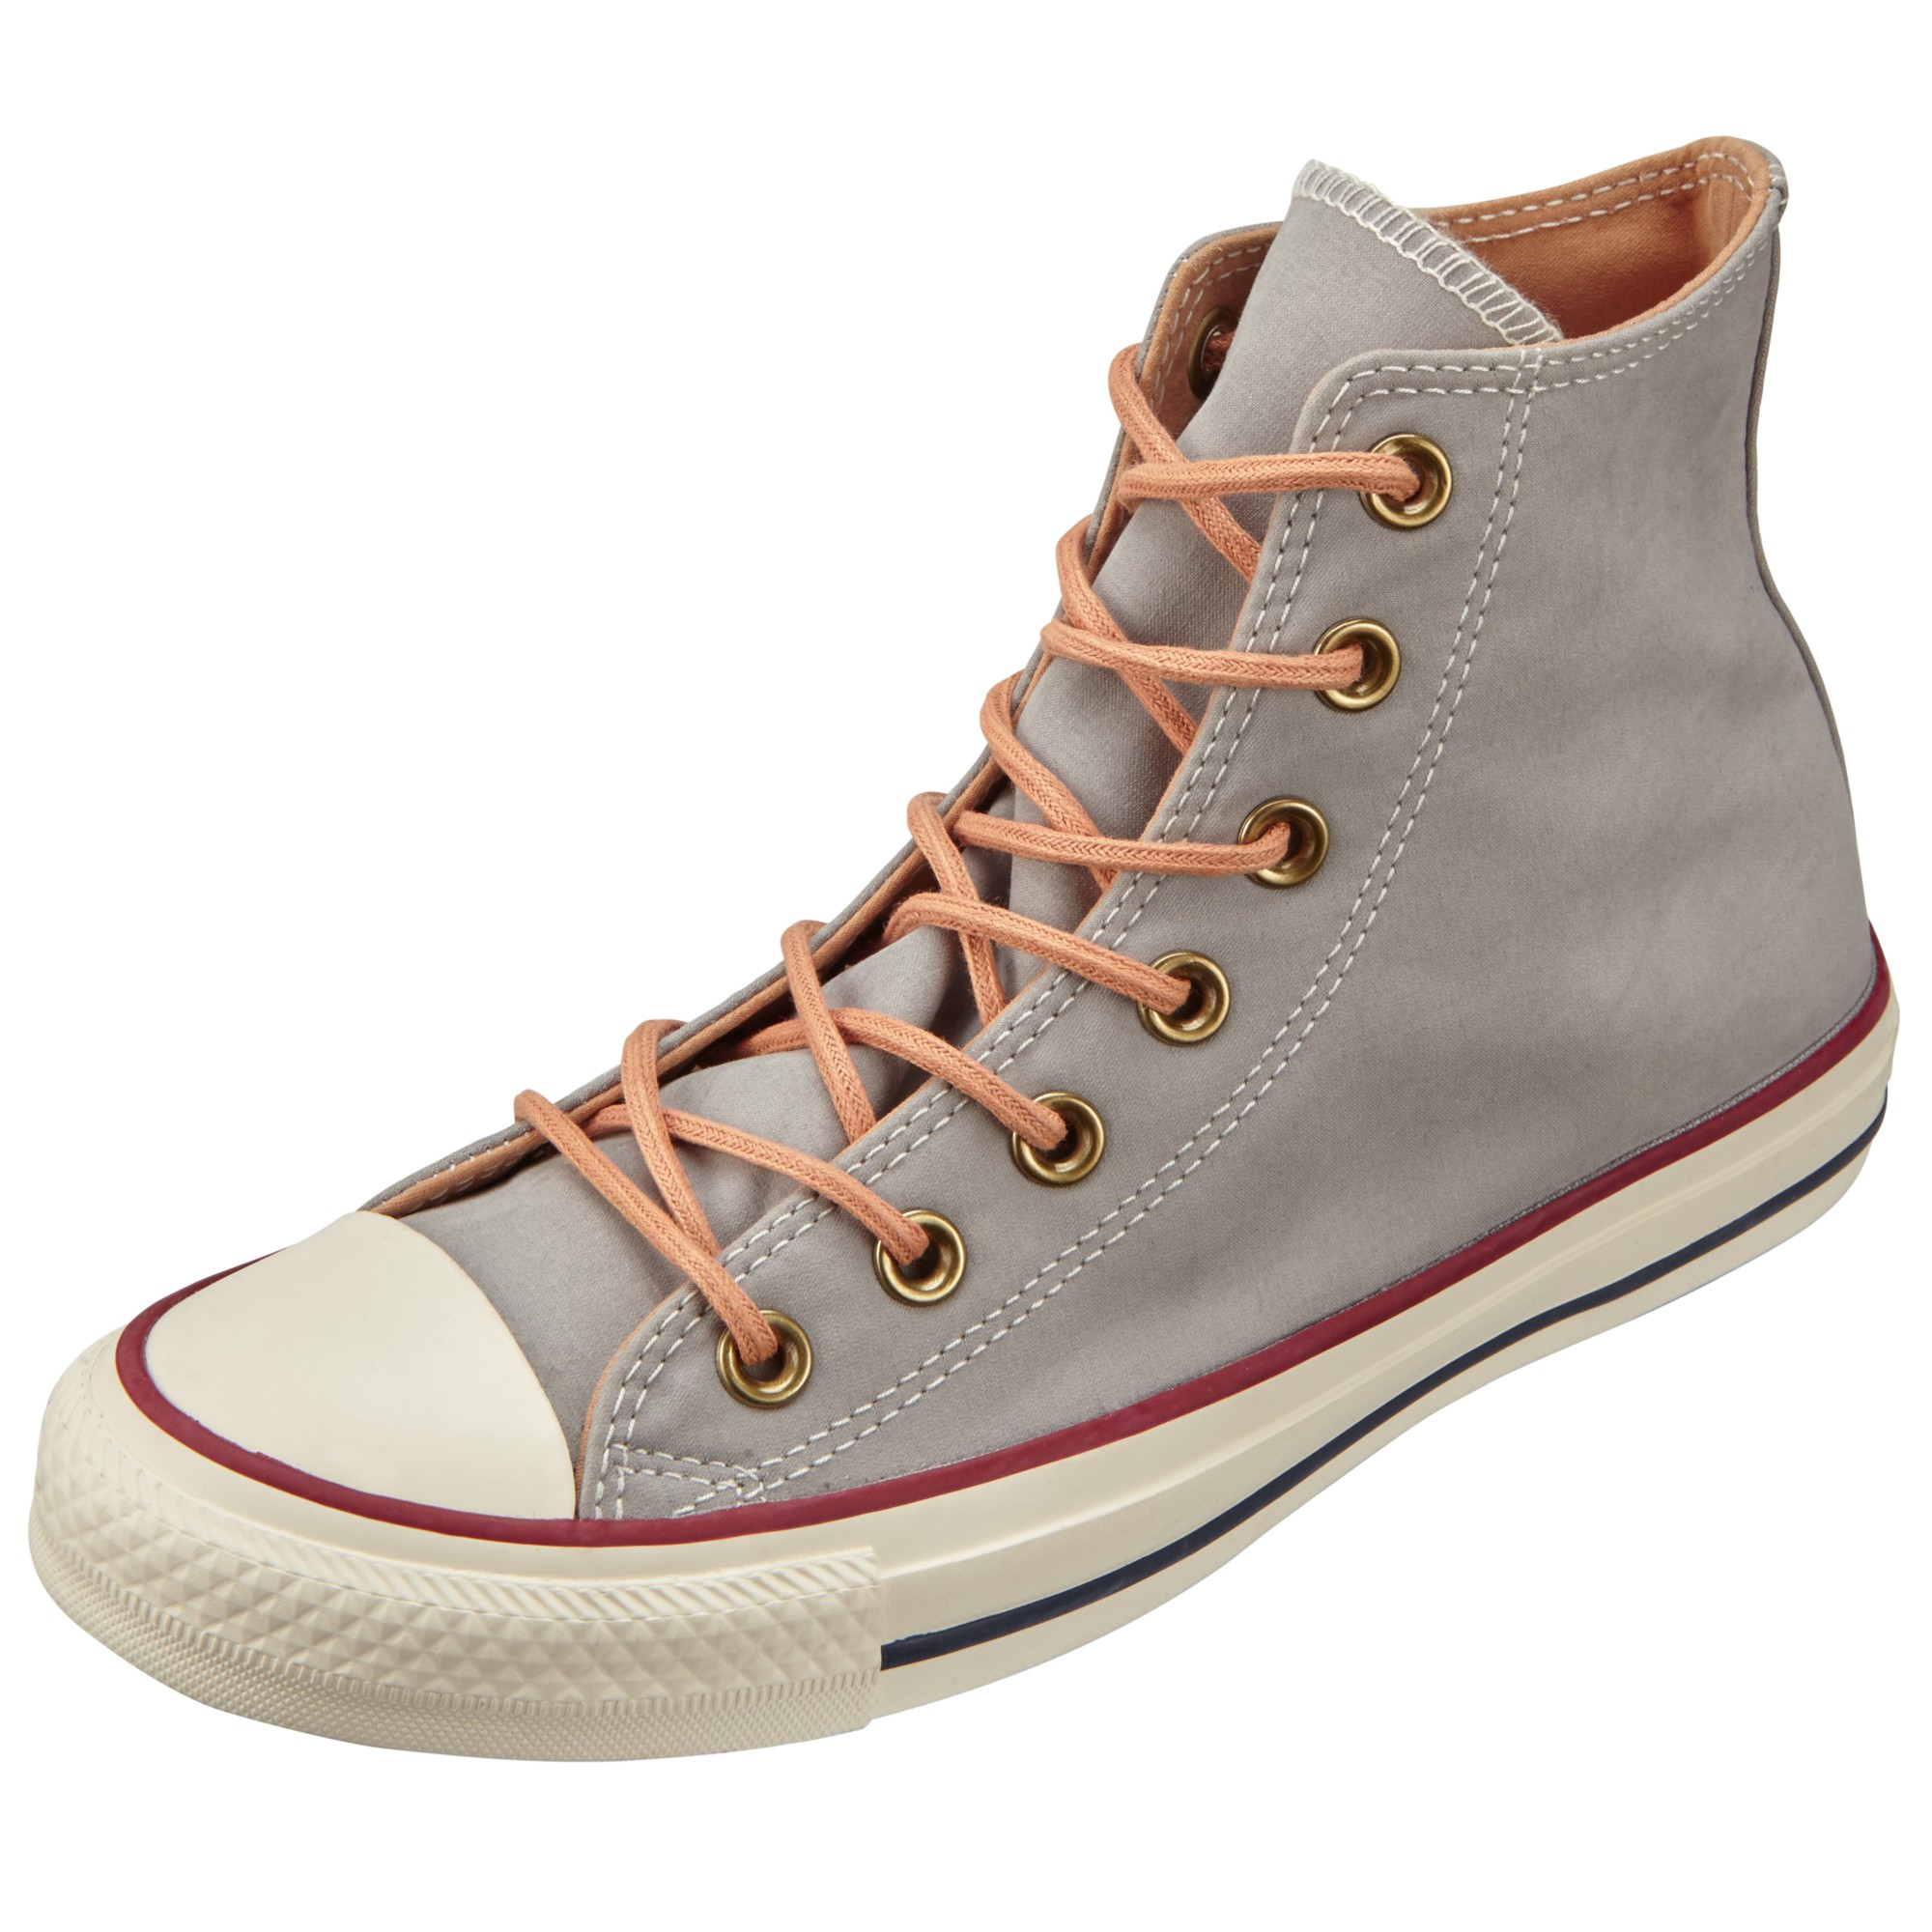 af25d97c627e Converse Chuck Taylor All Star Peached Hi Top Trainers in Gray - Lyst